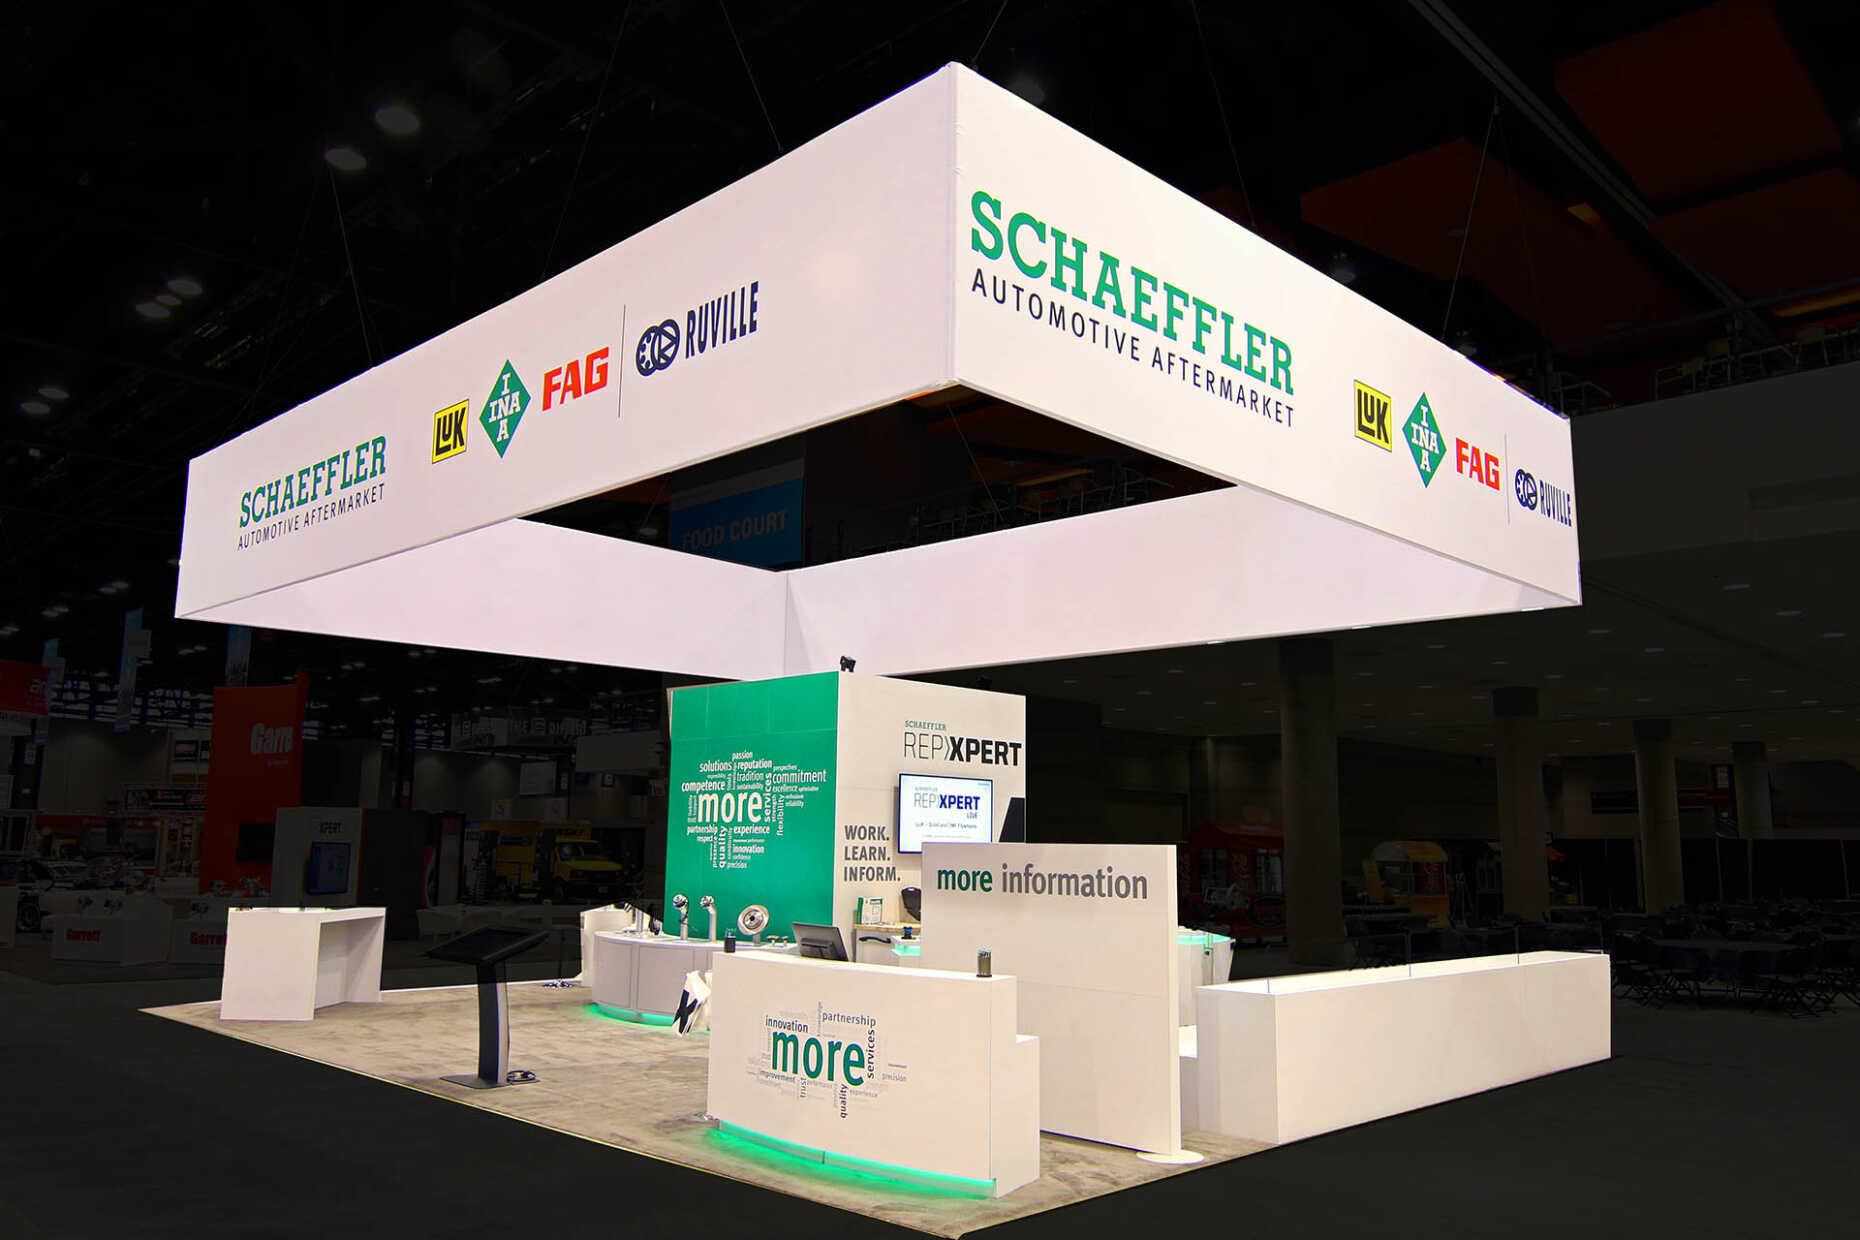 Schaeffler Group stood out on the show floor in their large island booth at Automechanica.